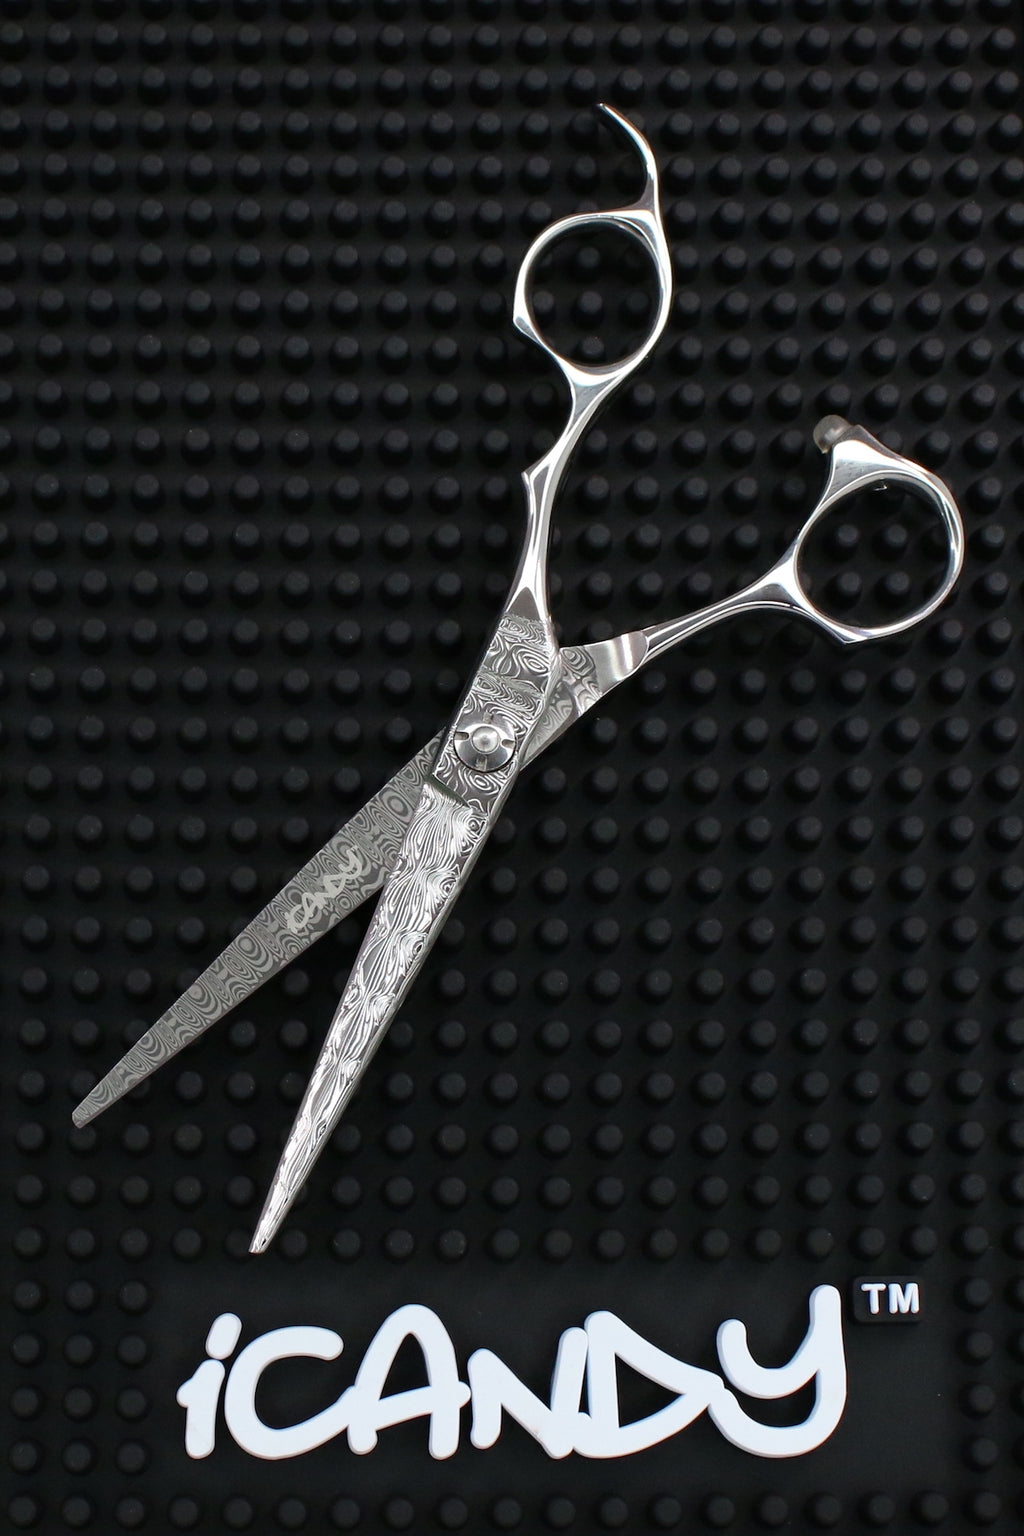 iCandy DAMA1 Damascus Scissors (6.0 inch) - iCandy Scissors